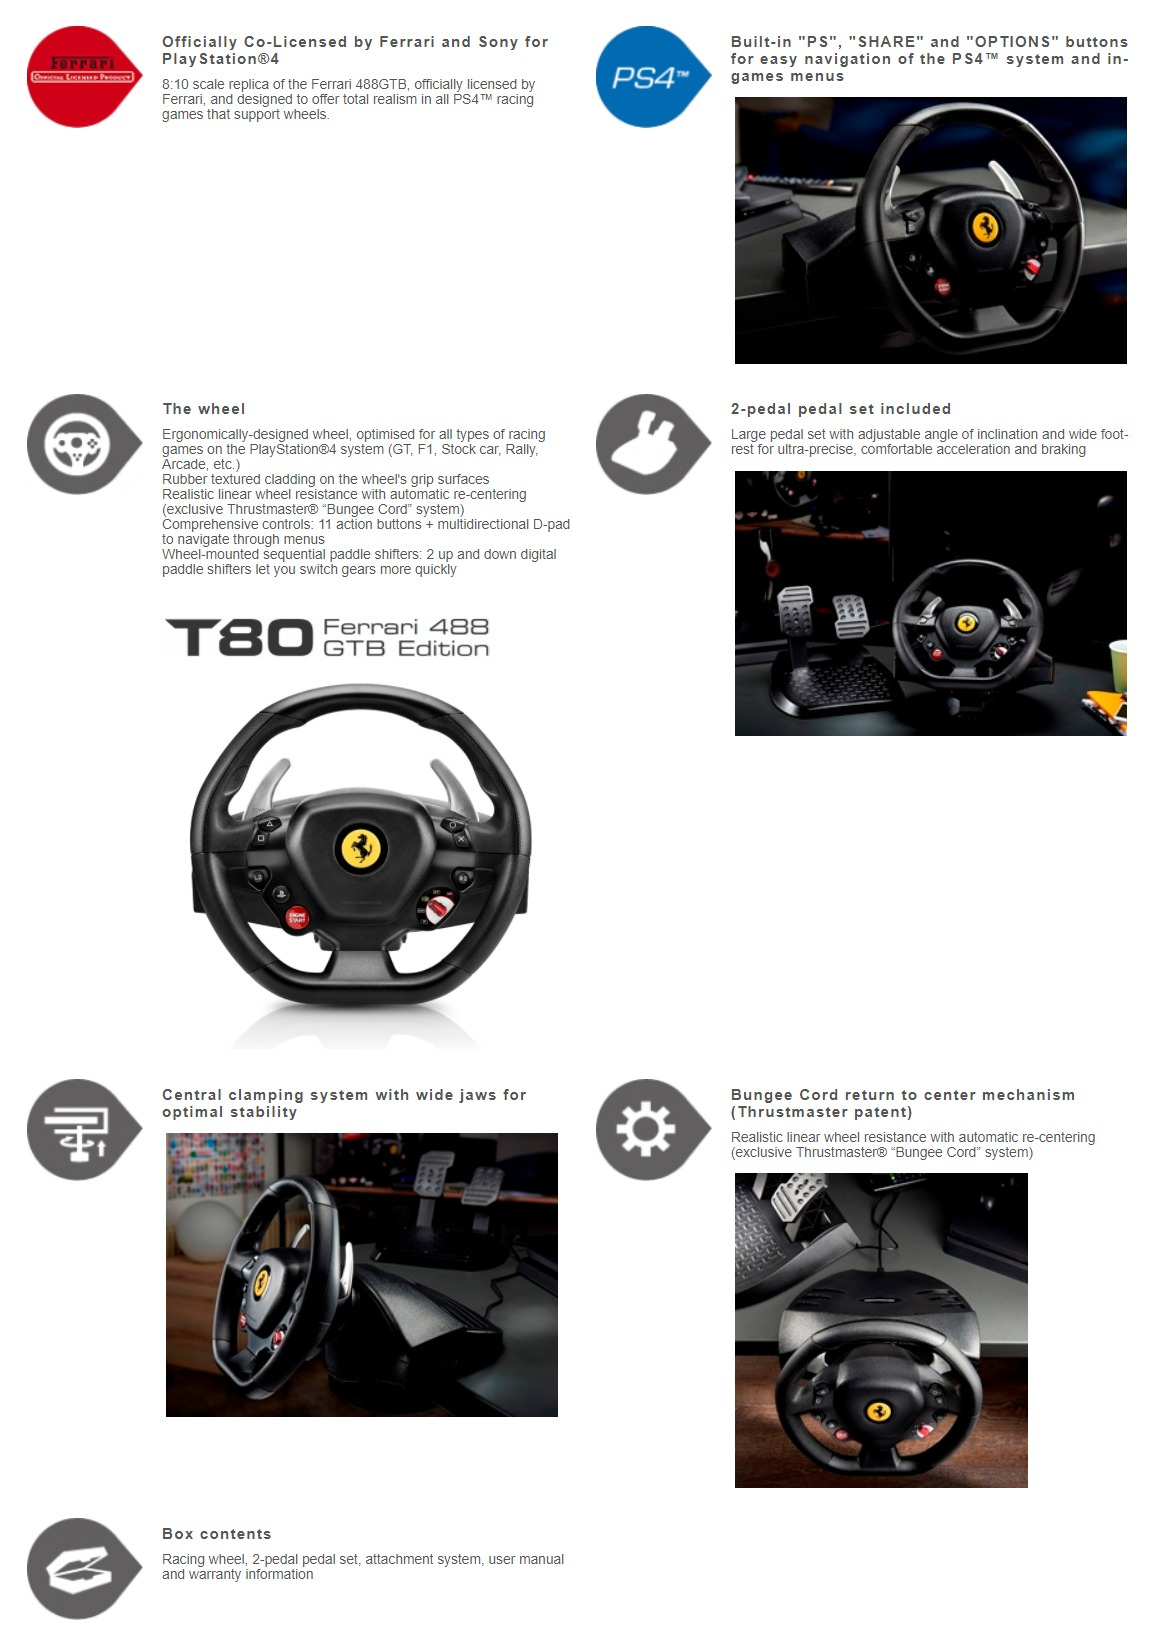 A large marketing image providing additional information about the product Thrustmaster T80 Ferrari 488 GTB Edition Racing Wheel For PC & PS4 - Additional alt info not provided